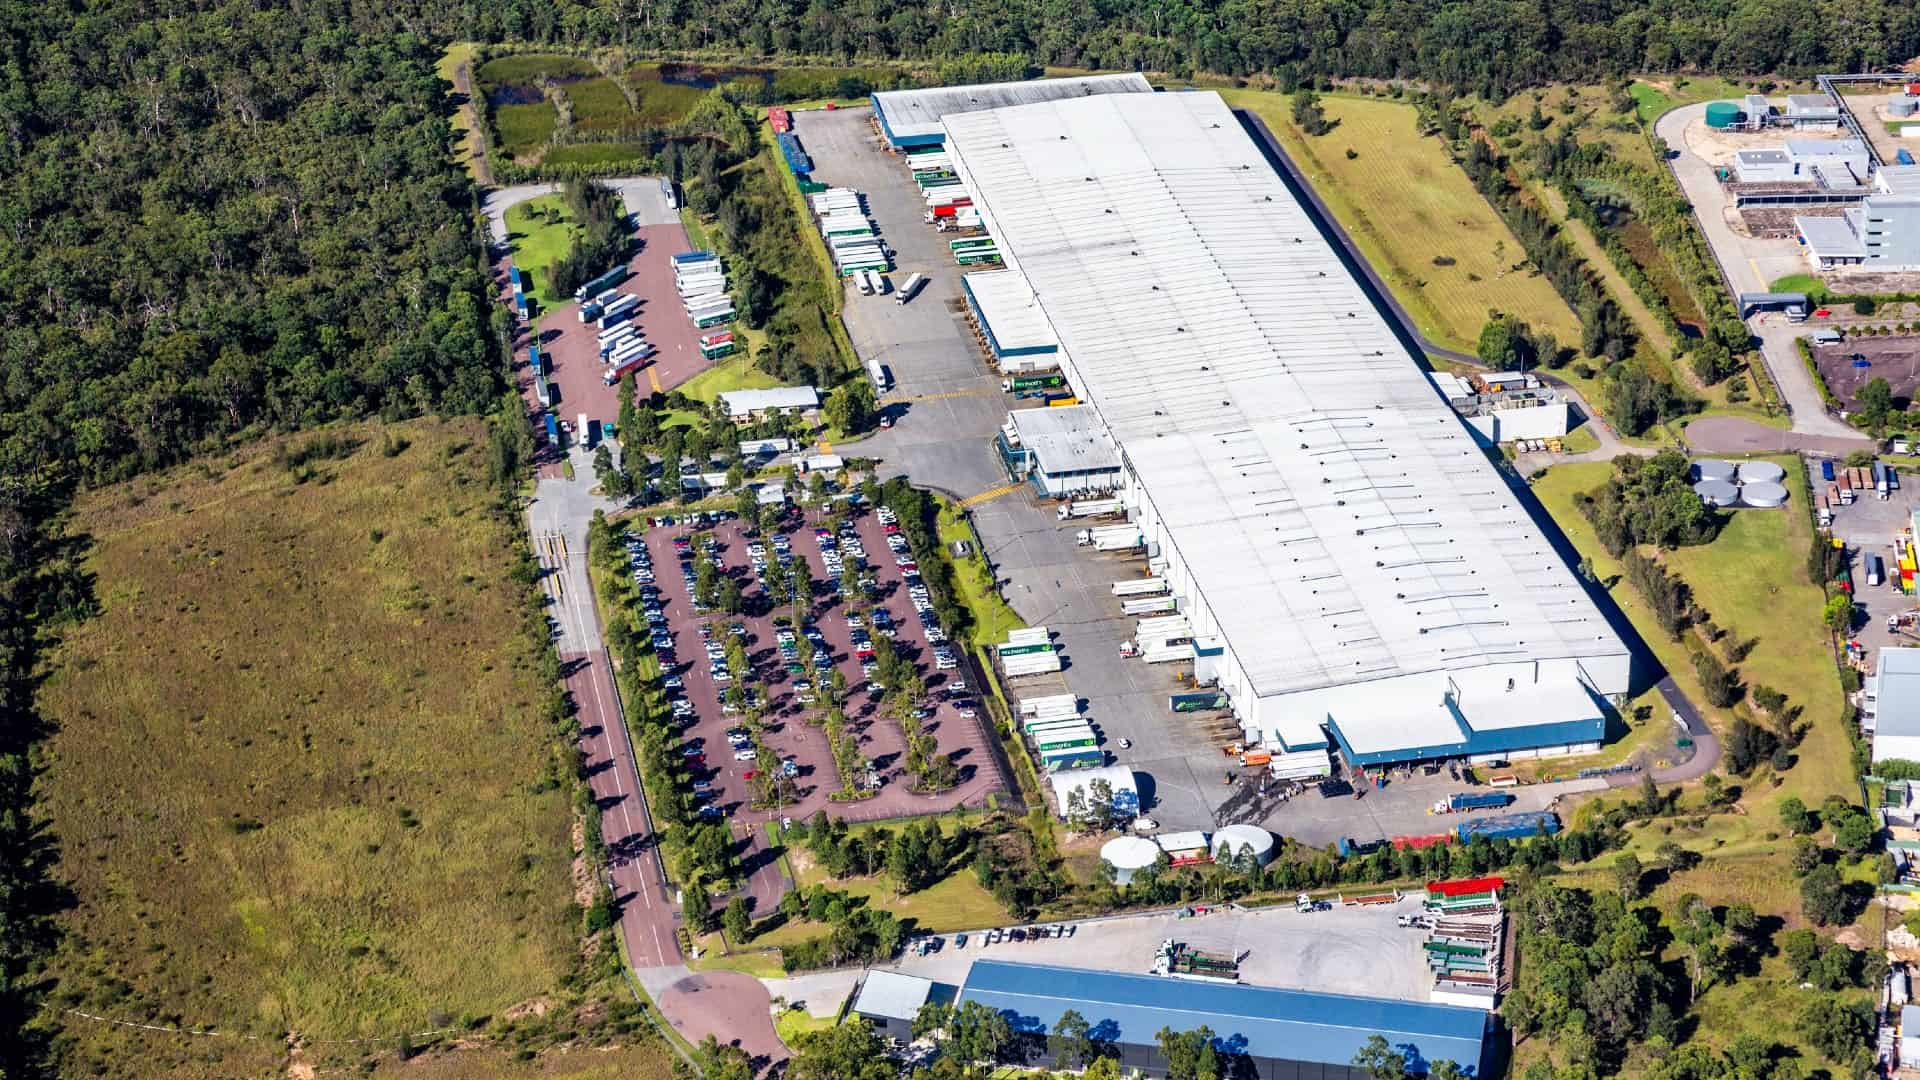 property asx share price represented by aerial view of large warehouse